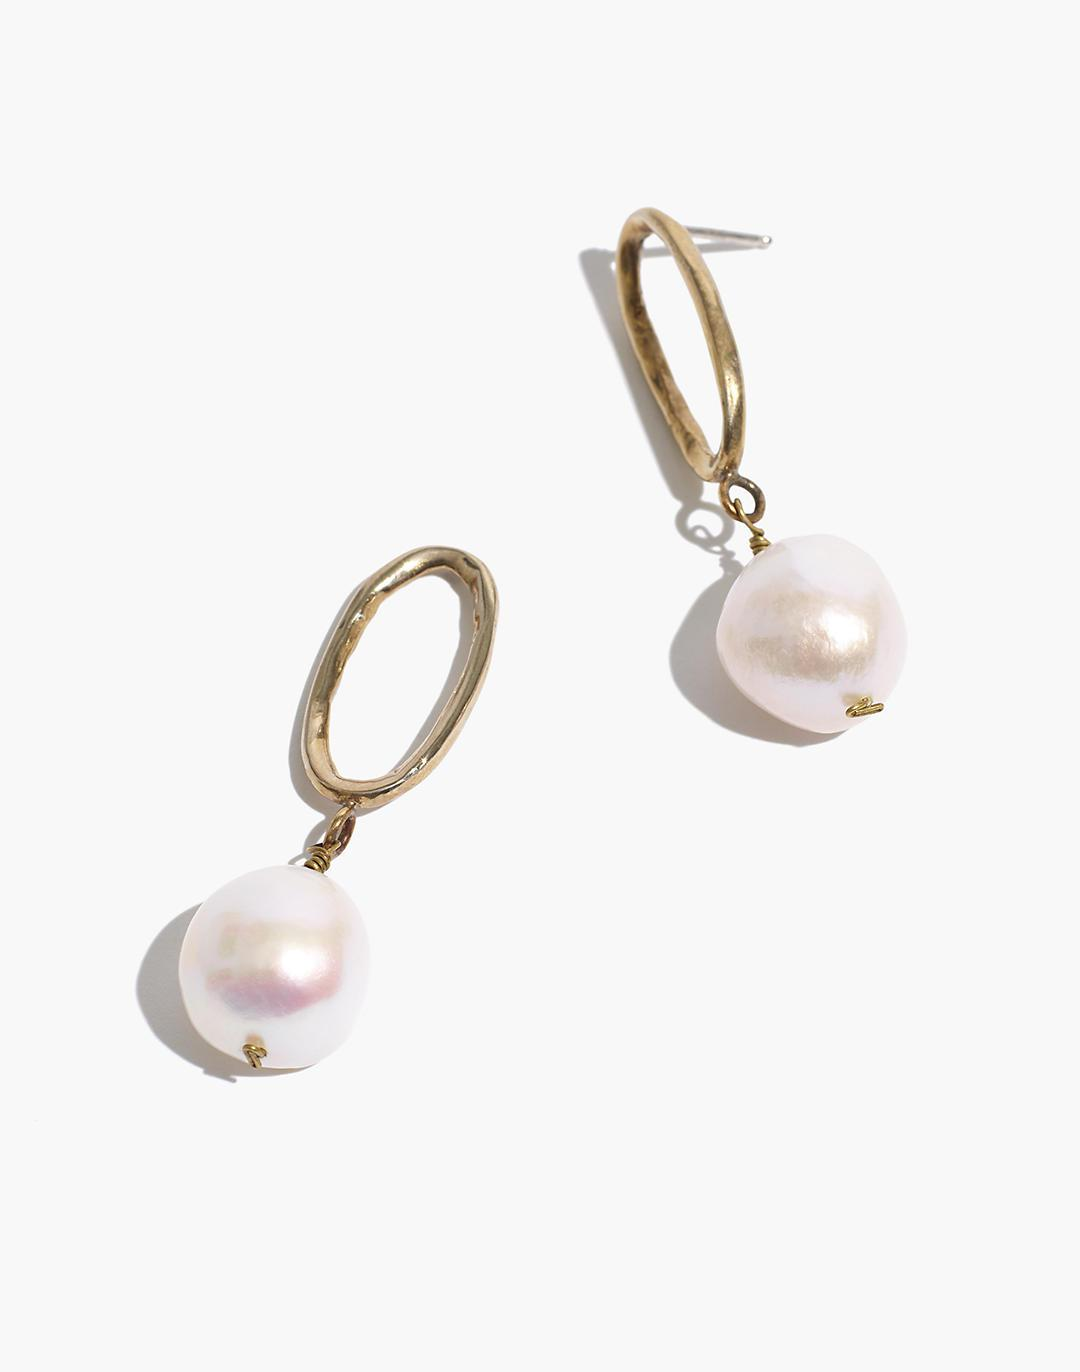 Geoflora Jewelry Chain and Baroque Pearl Earrings